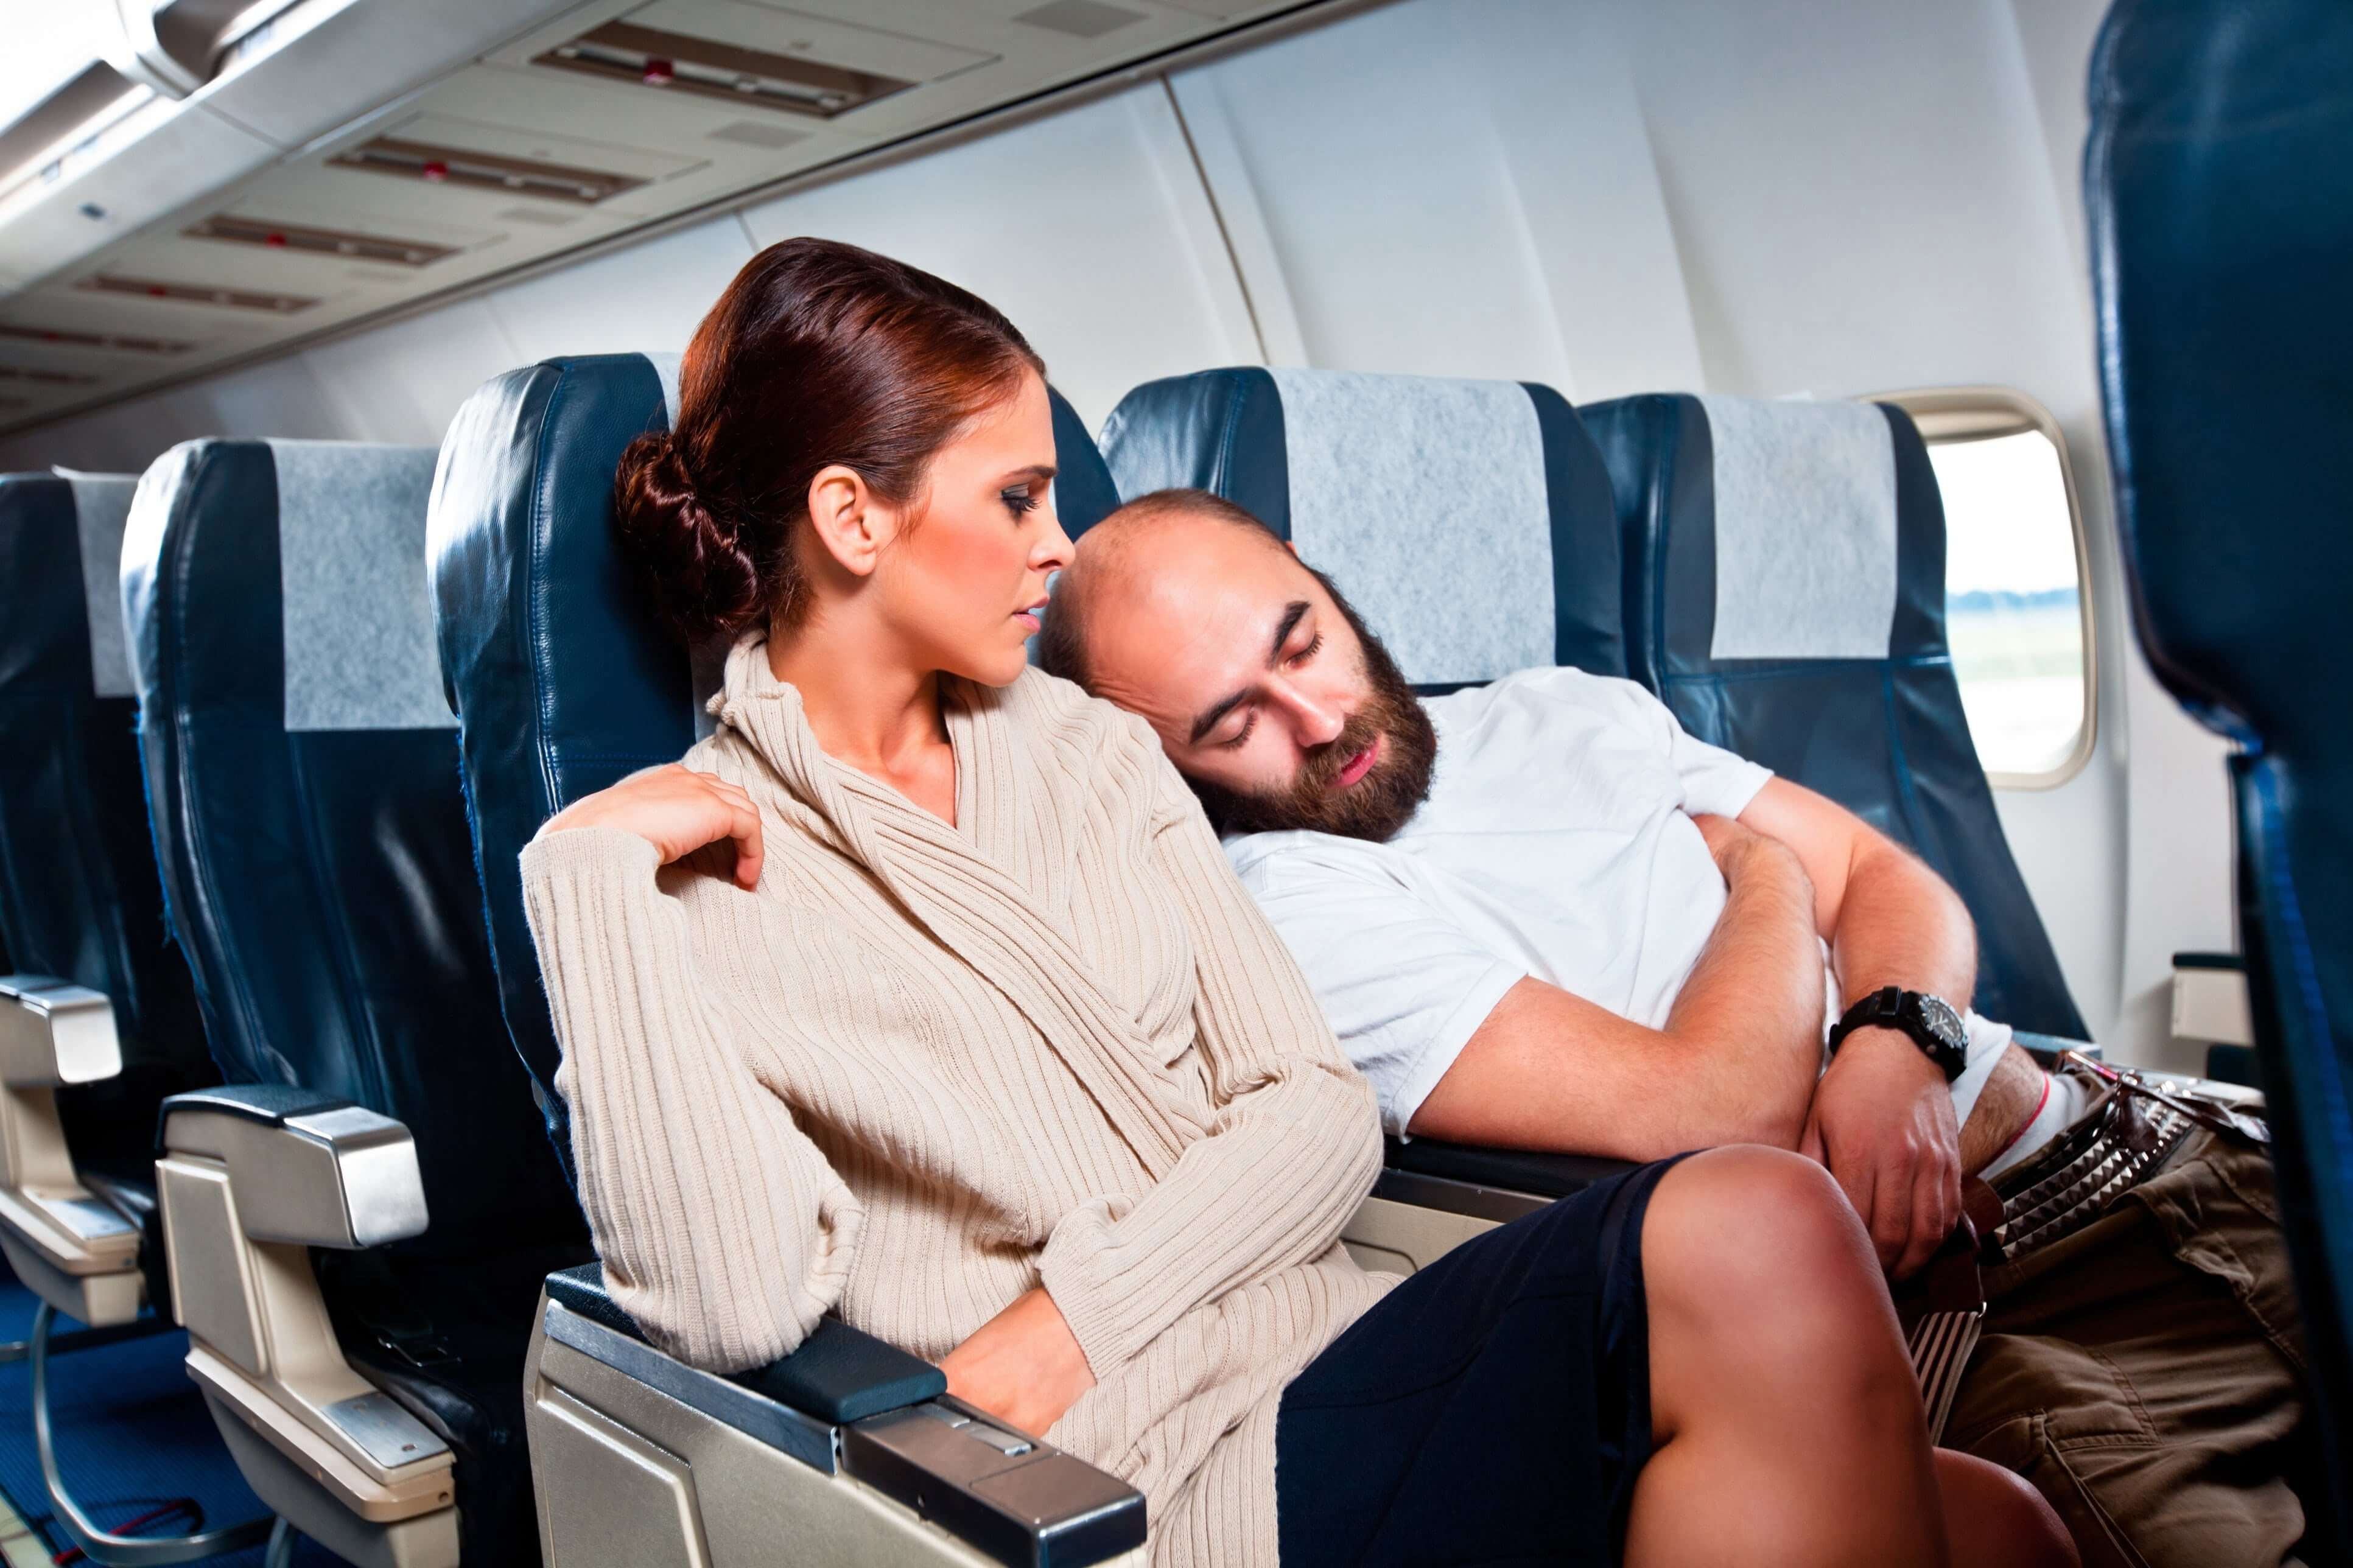 Man falling asleep on woman on plane